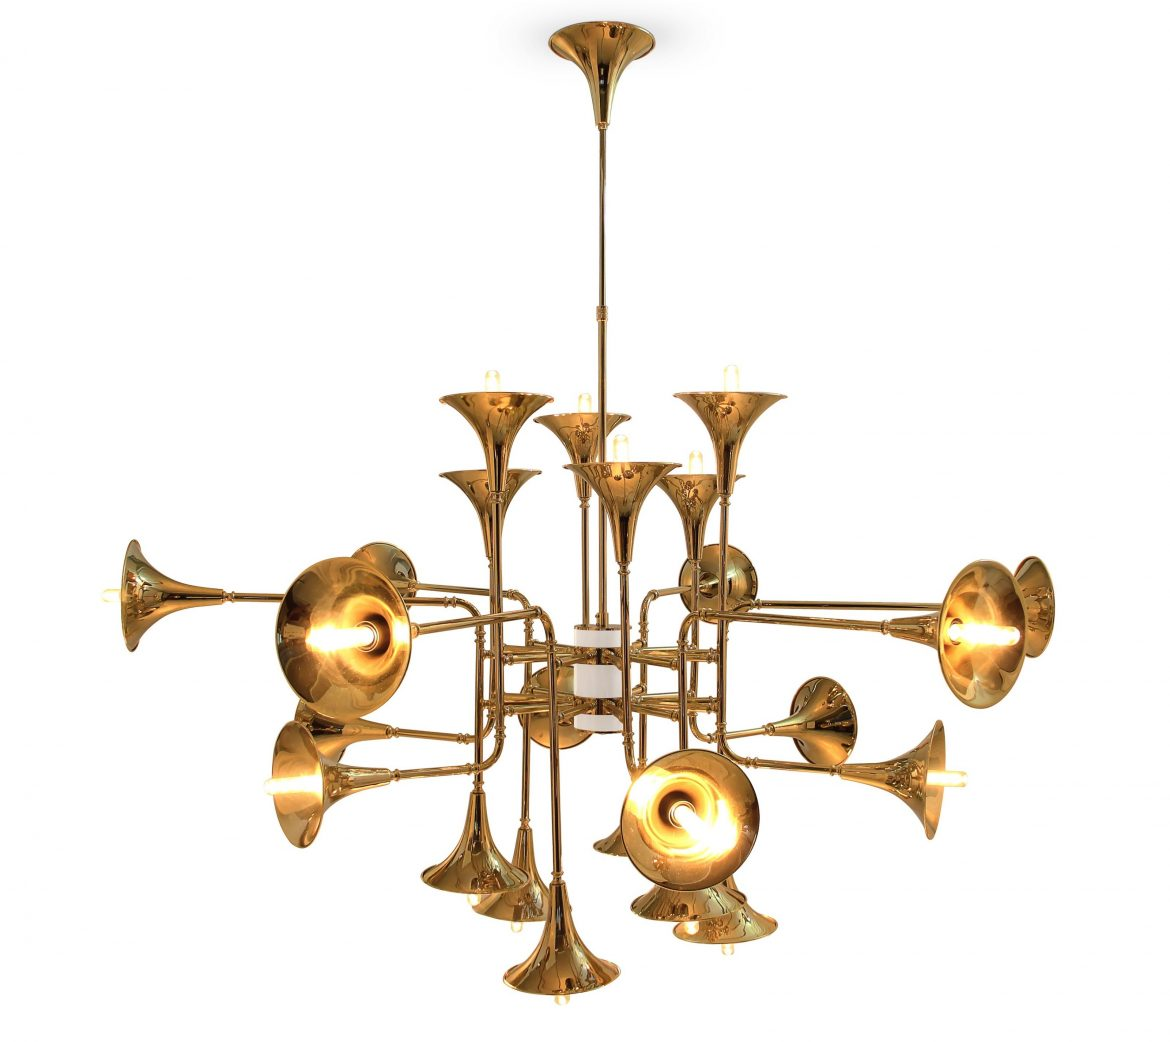 Mohd: Luxury Lighting Designs For Your Home Decor  mohd Mohd: Luxury Lighting Designs For Your Home Decor  Mohd Luxury Lighting Designs For Your Home Decor 4